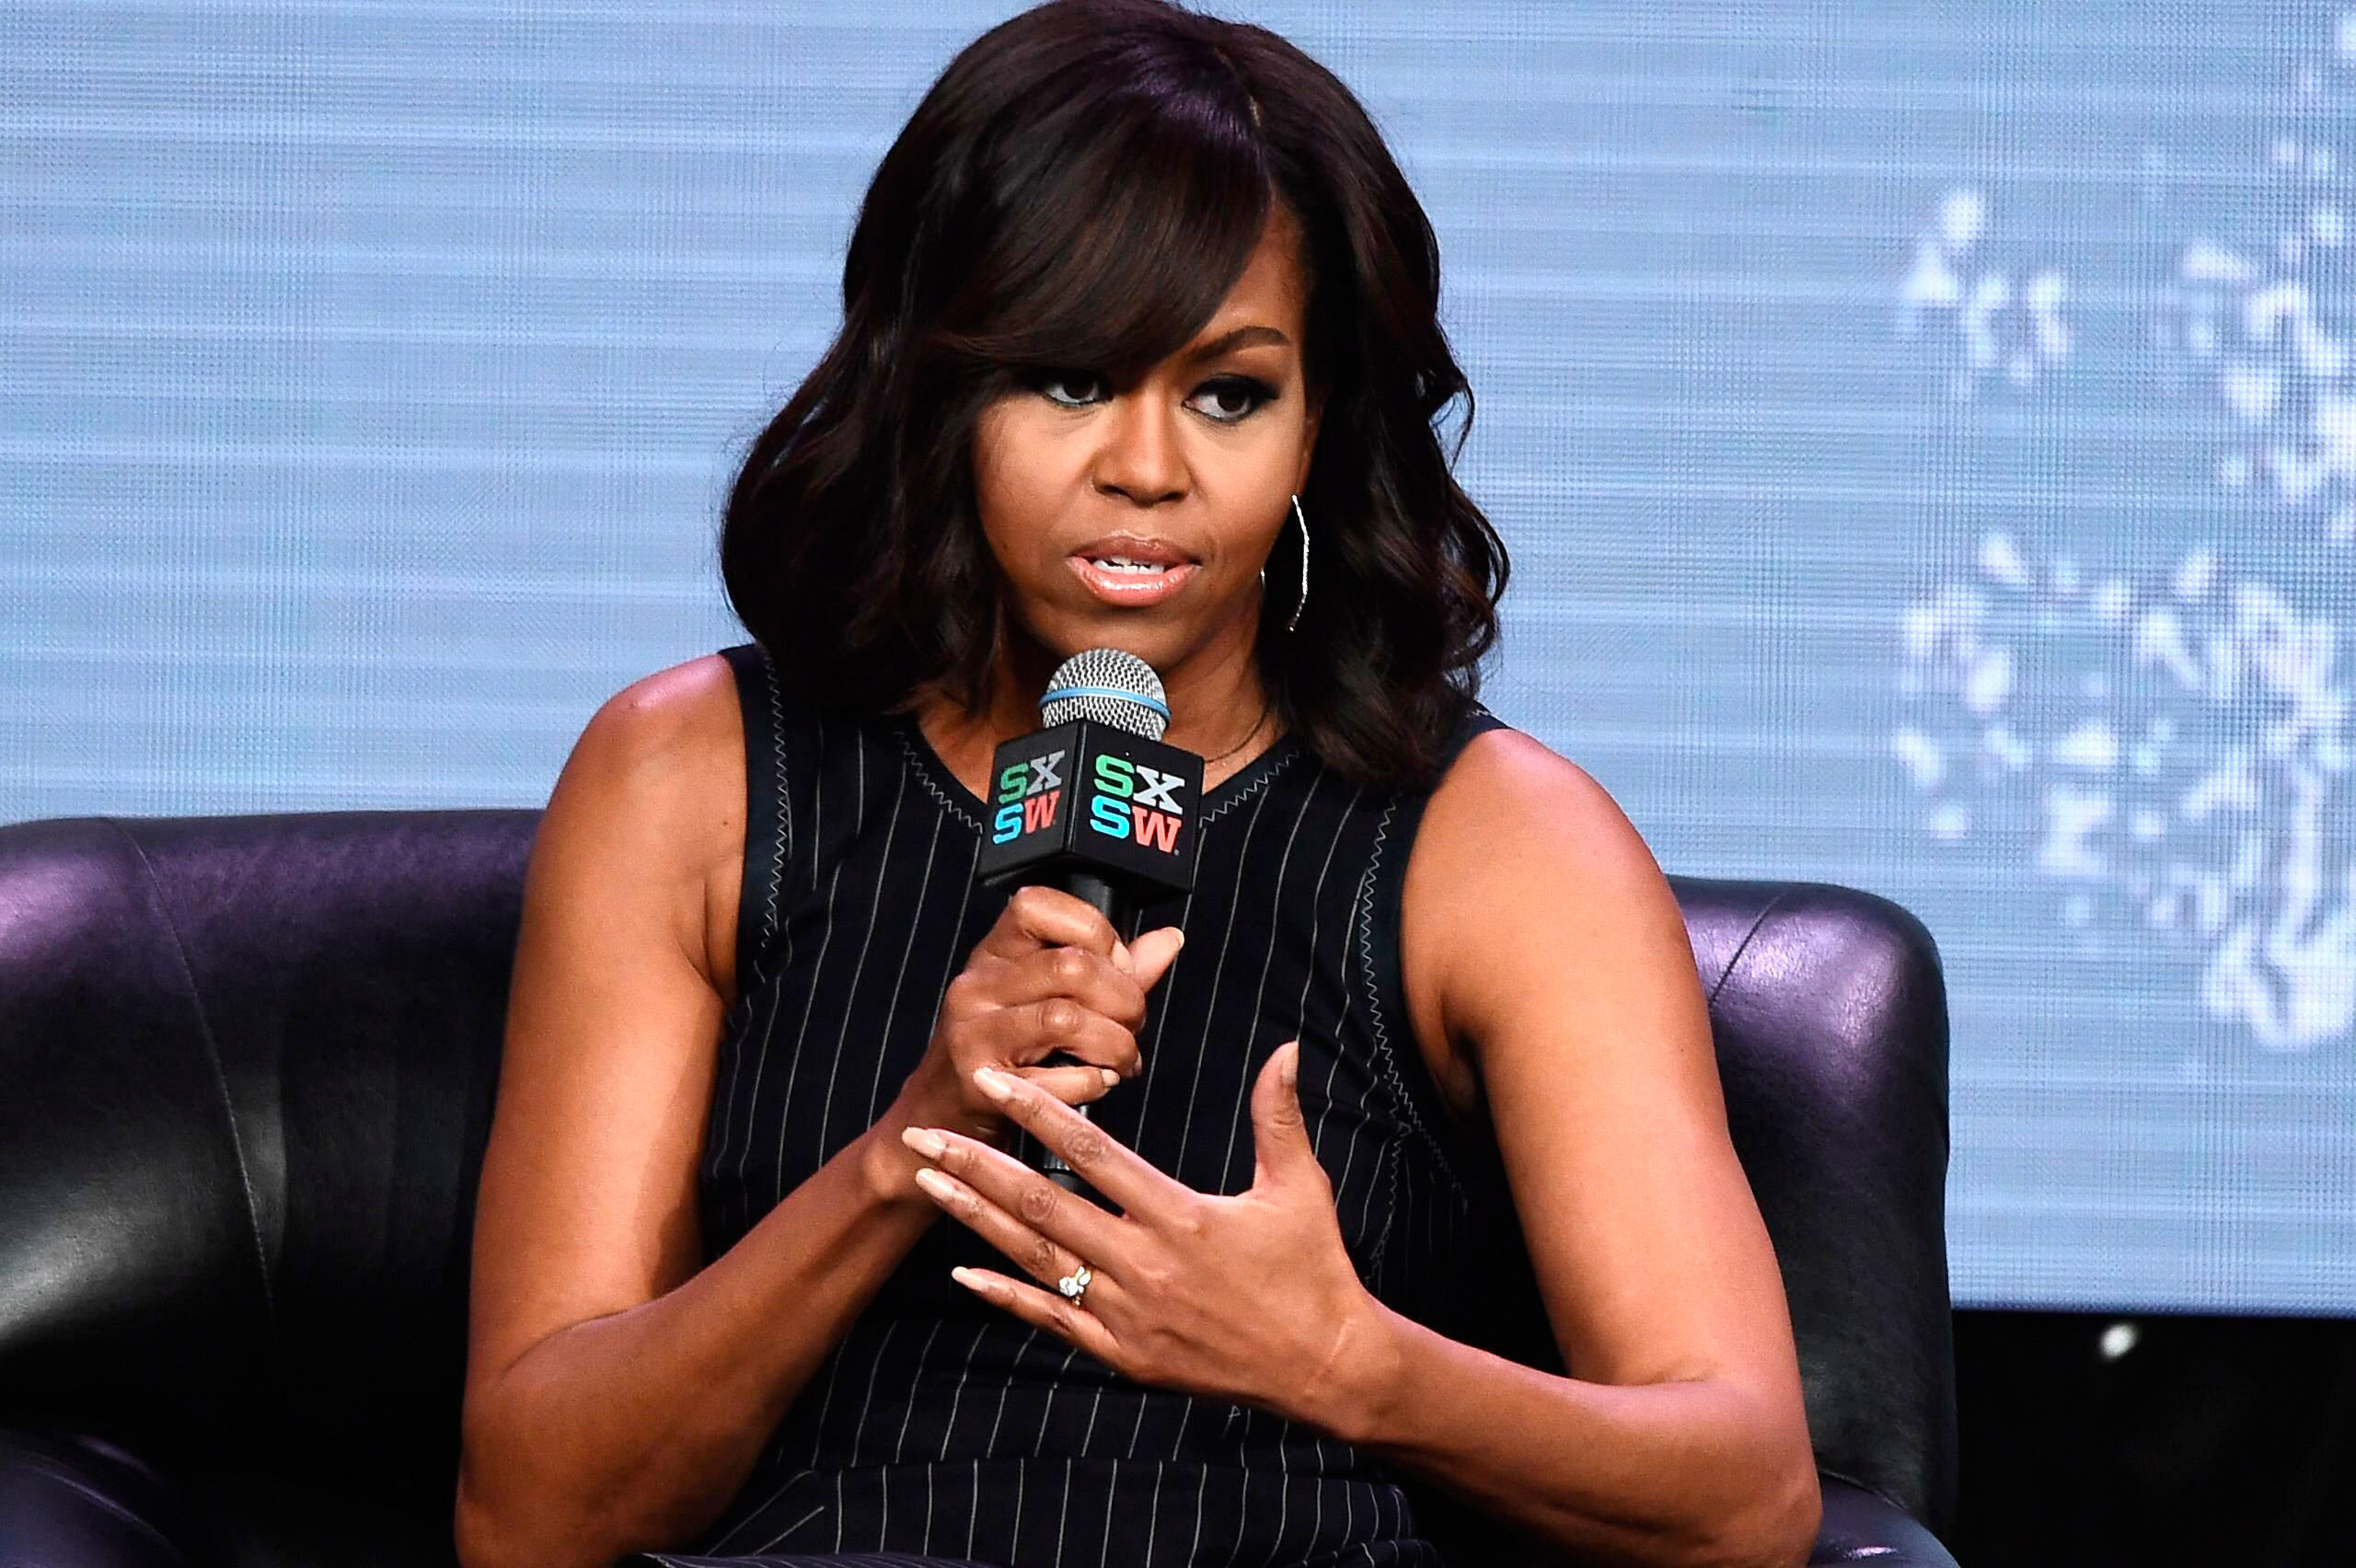 Michelle Obama delivers a keynote speech at the SXSW Festival in Austin, Texas, March 16, 2016.